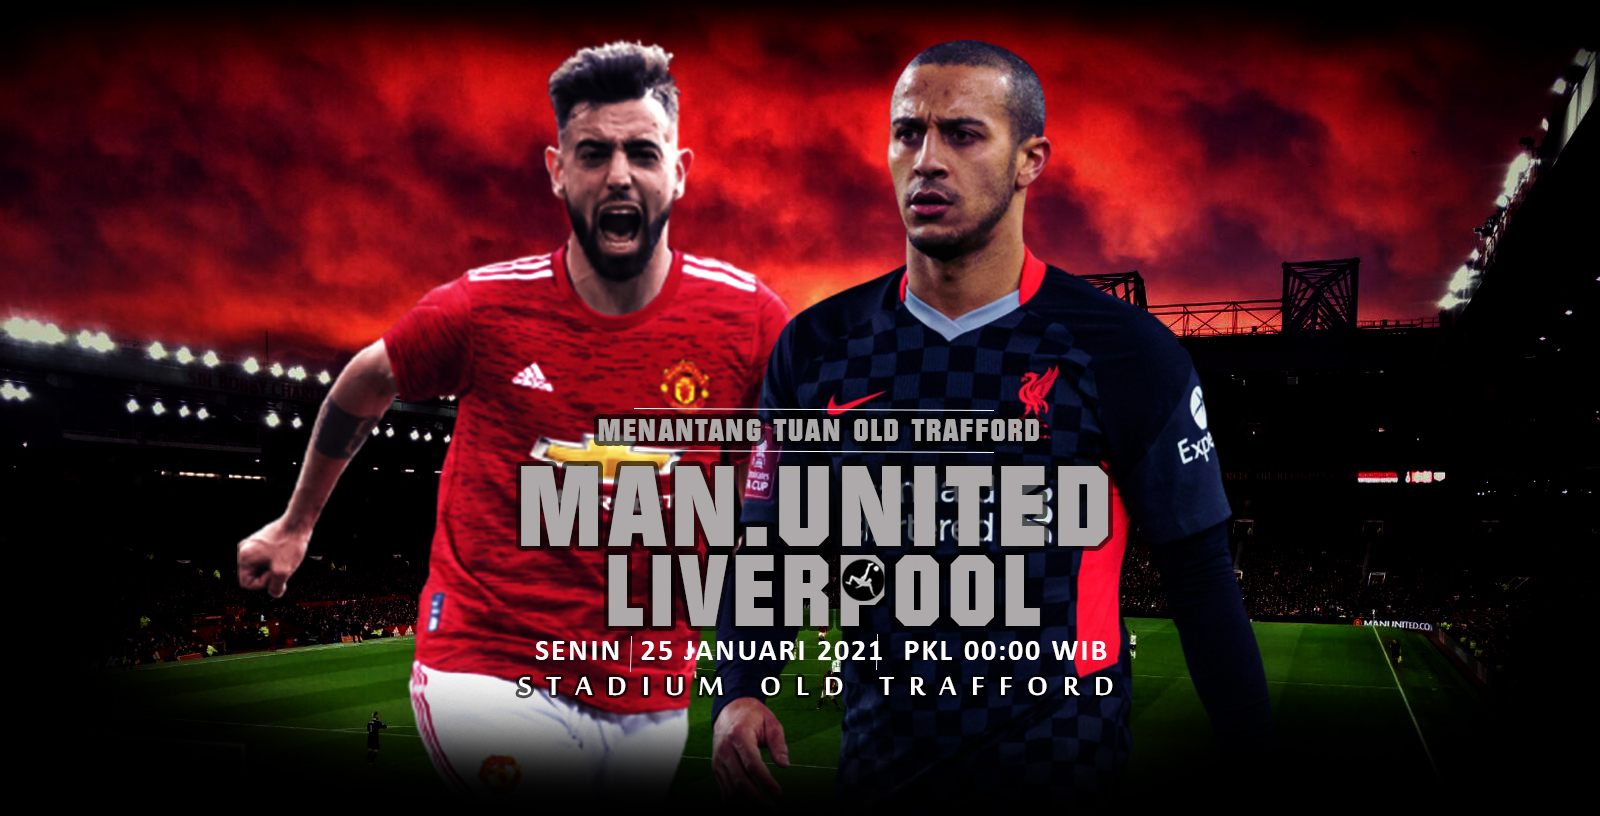 Manchester United vs Liverpool ( IBIS )